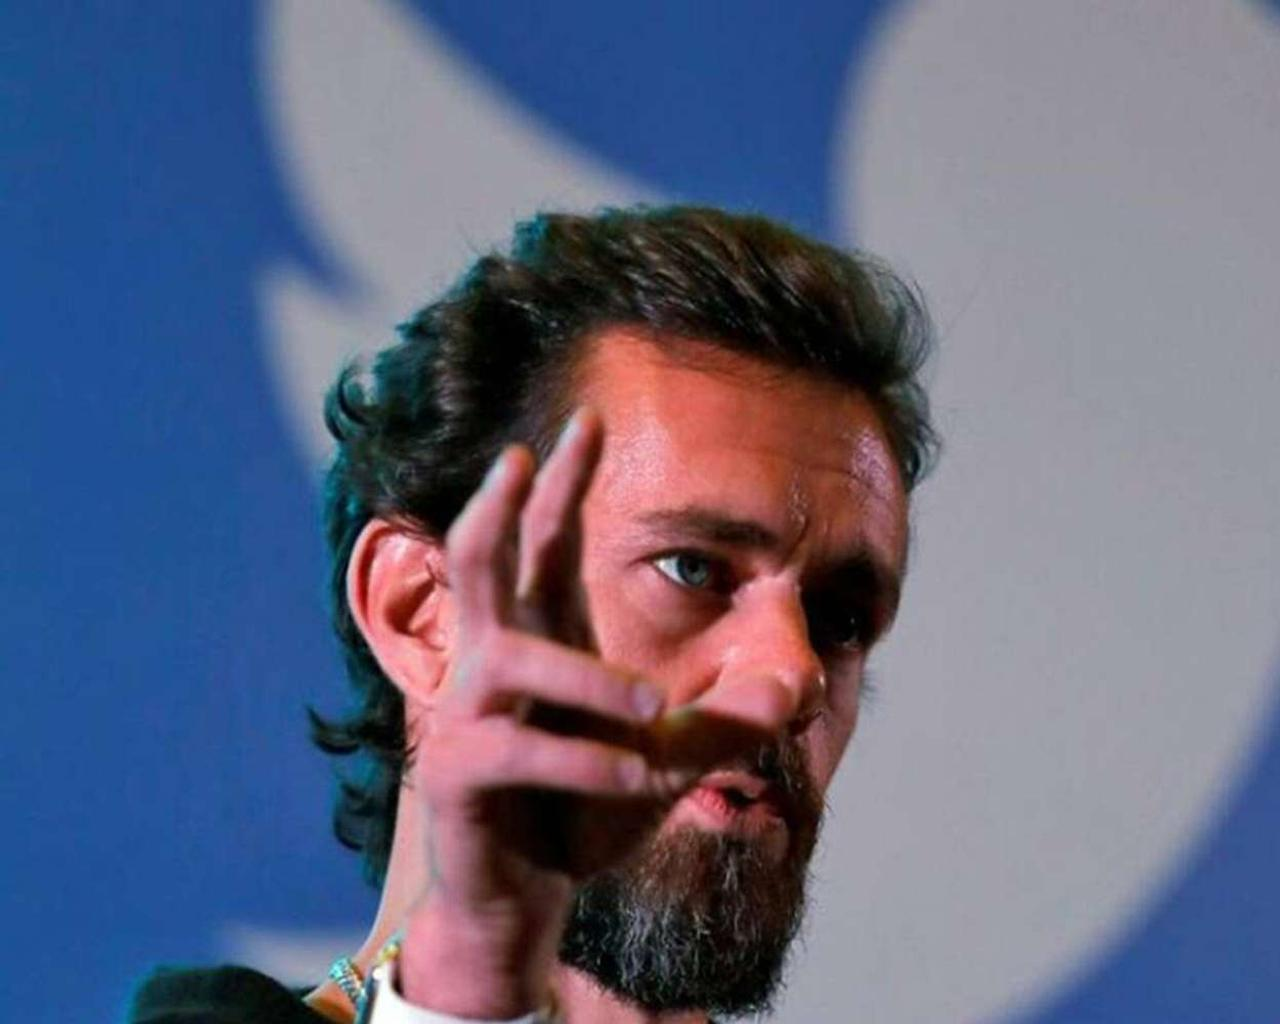 Jack Dorsey's first tweet sells for 2.9 million Dollars